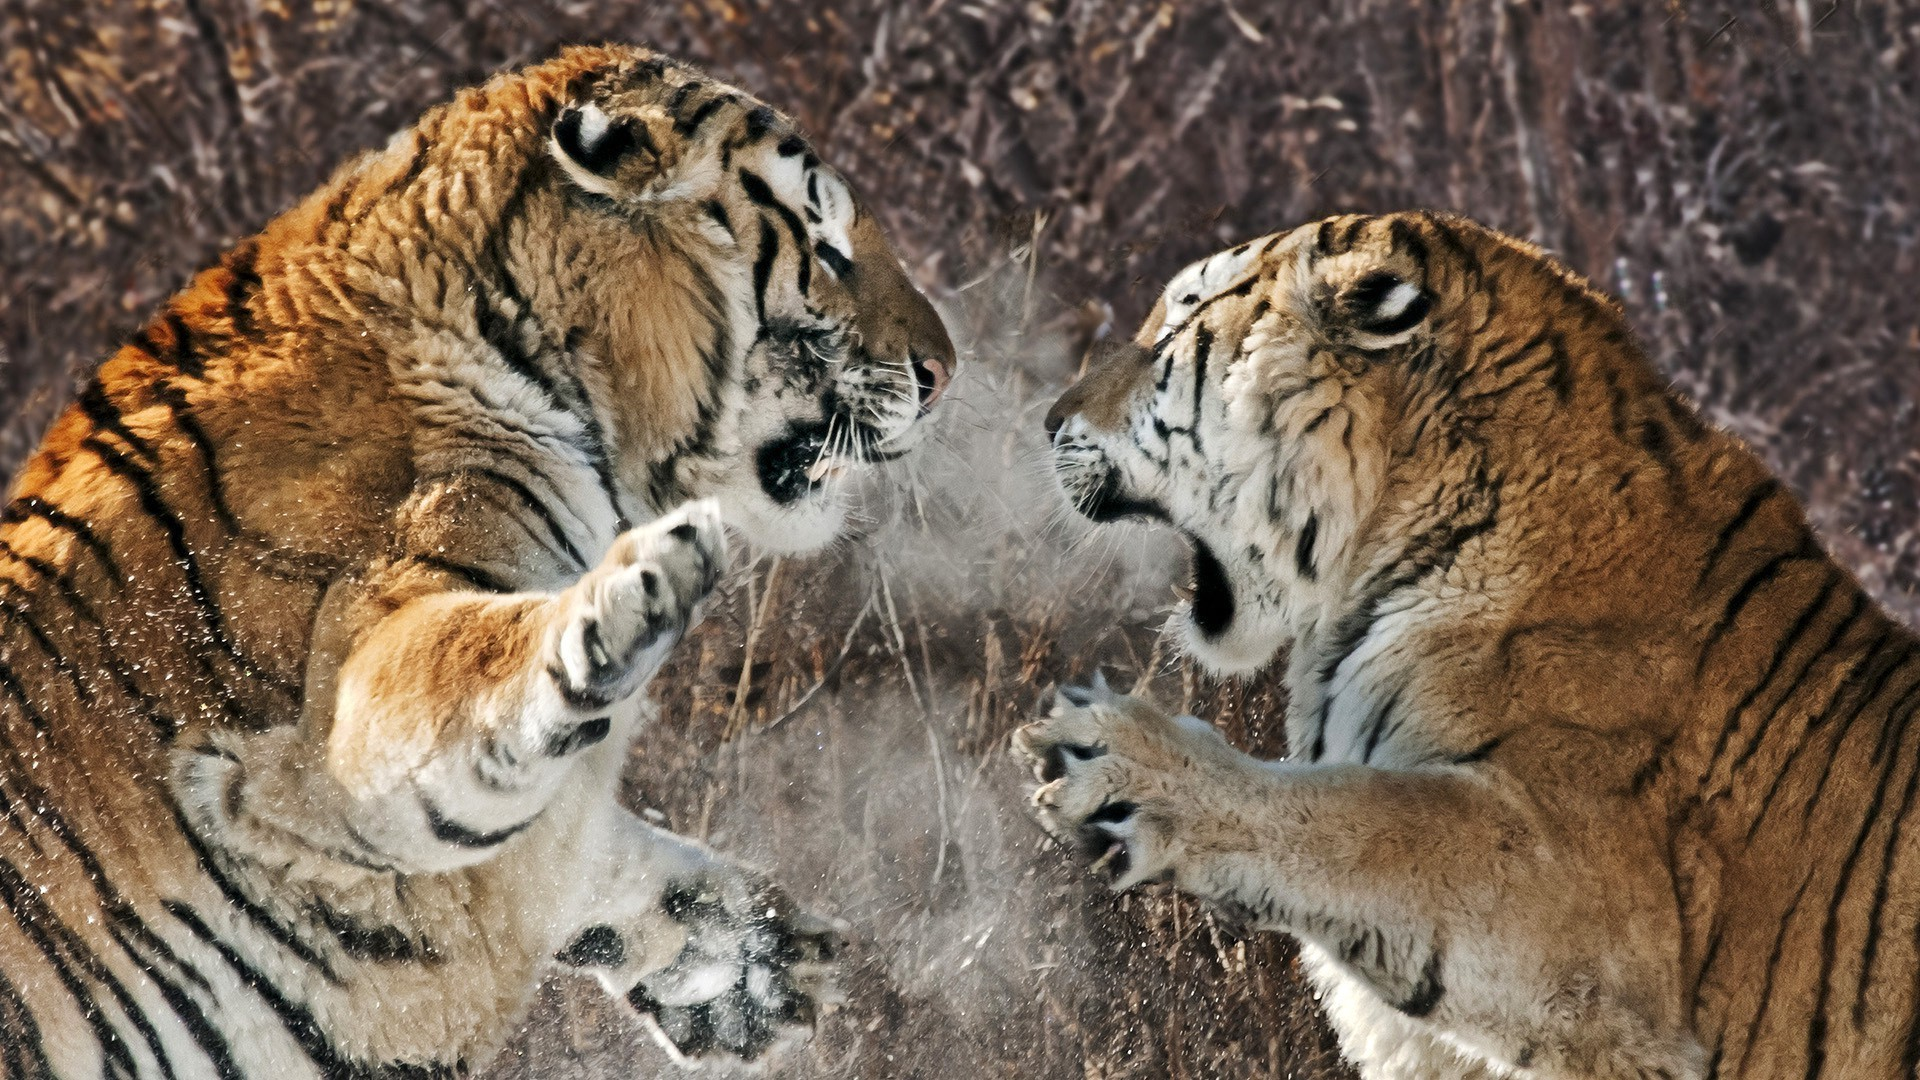 Two tigers fight each other